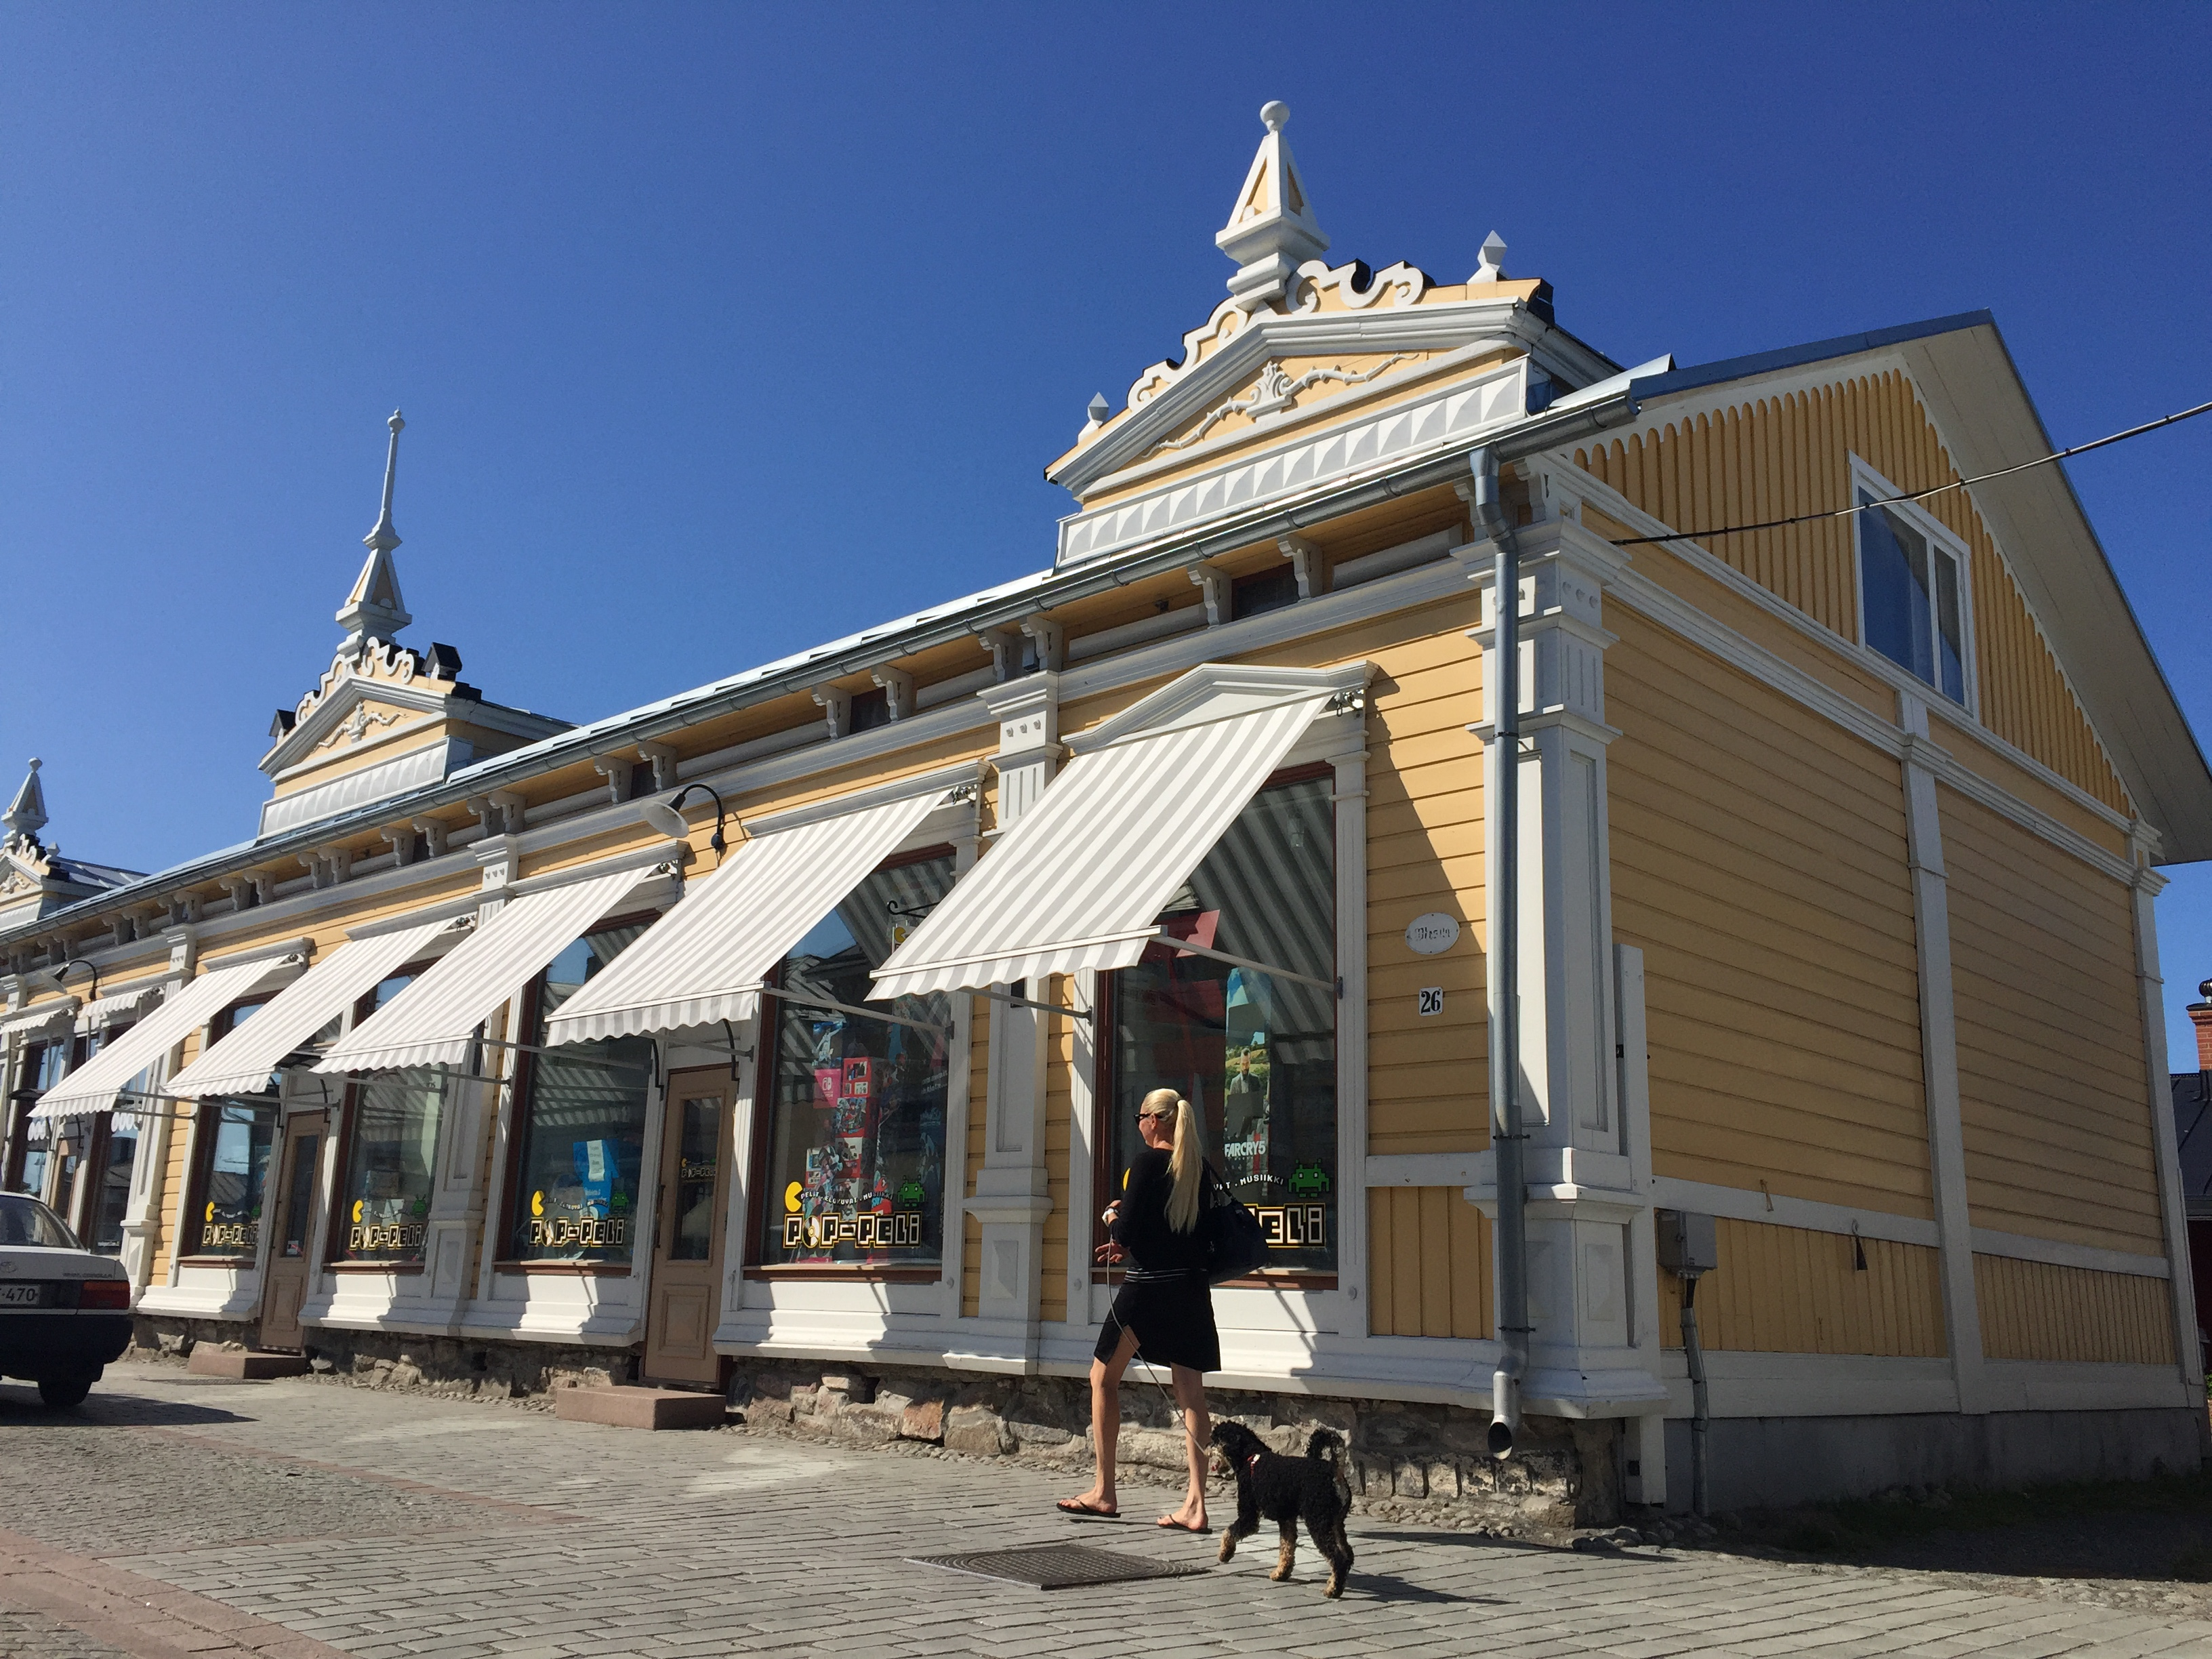 Yellow historic wooden building and dog in Finland